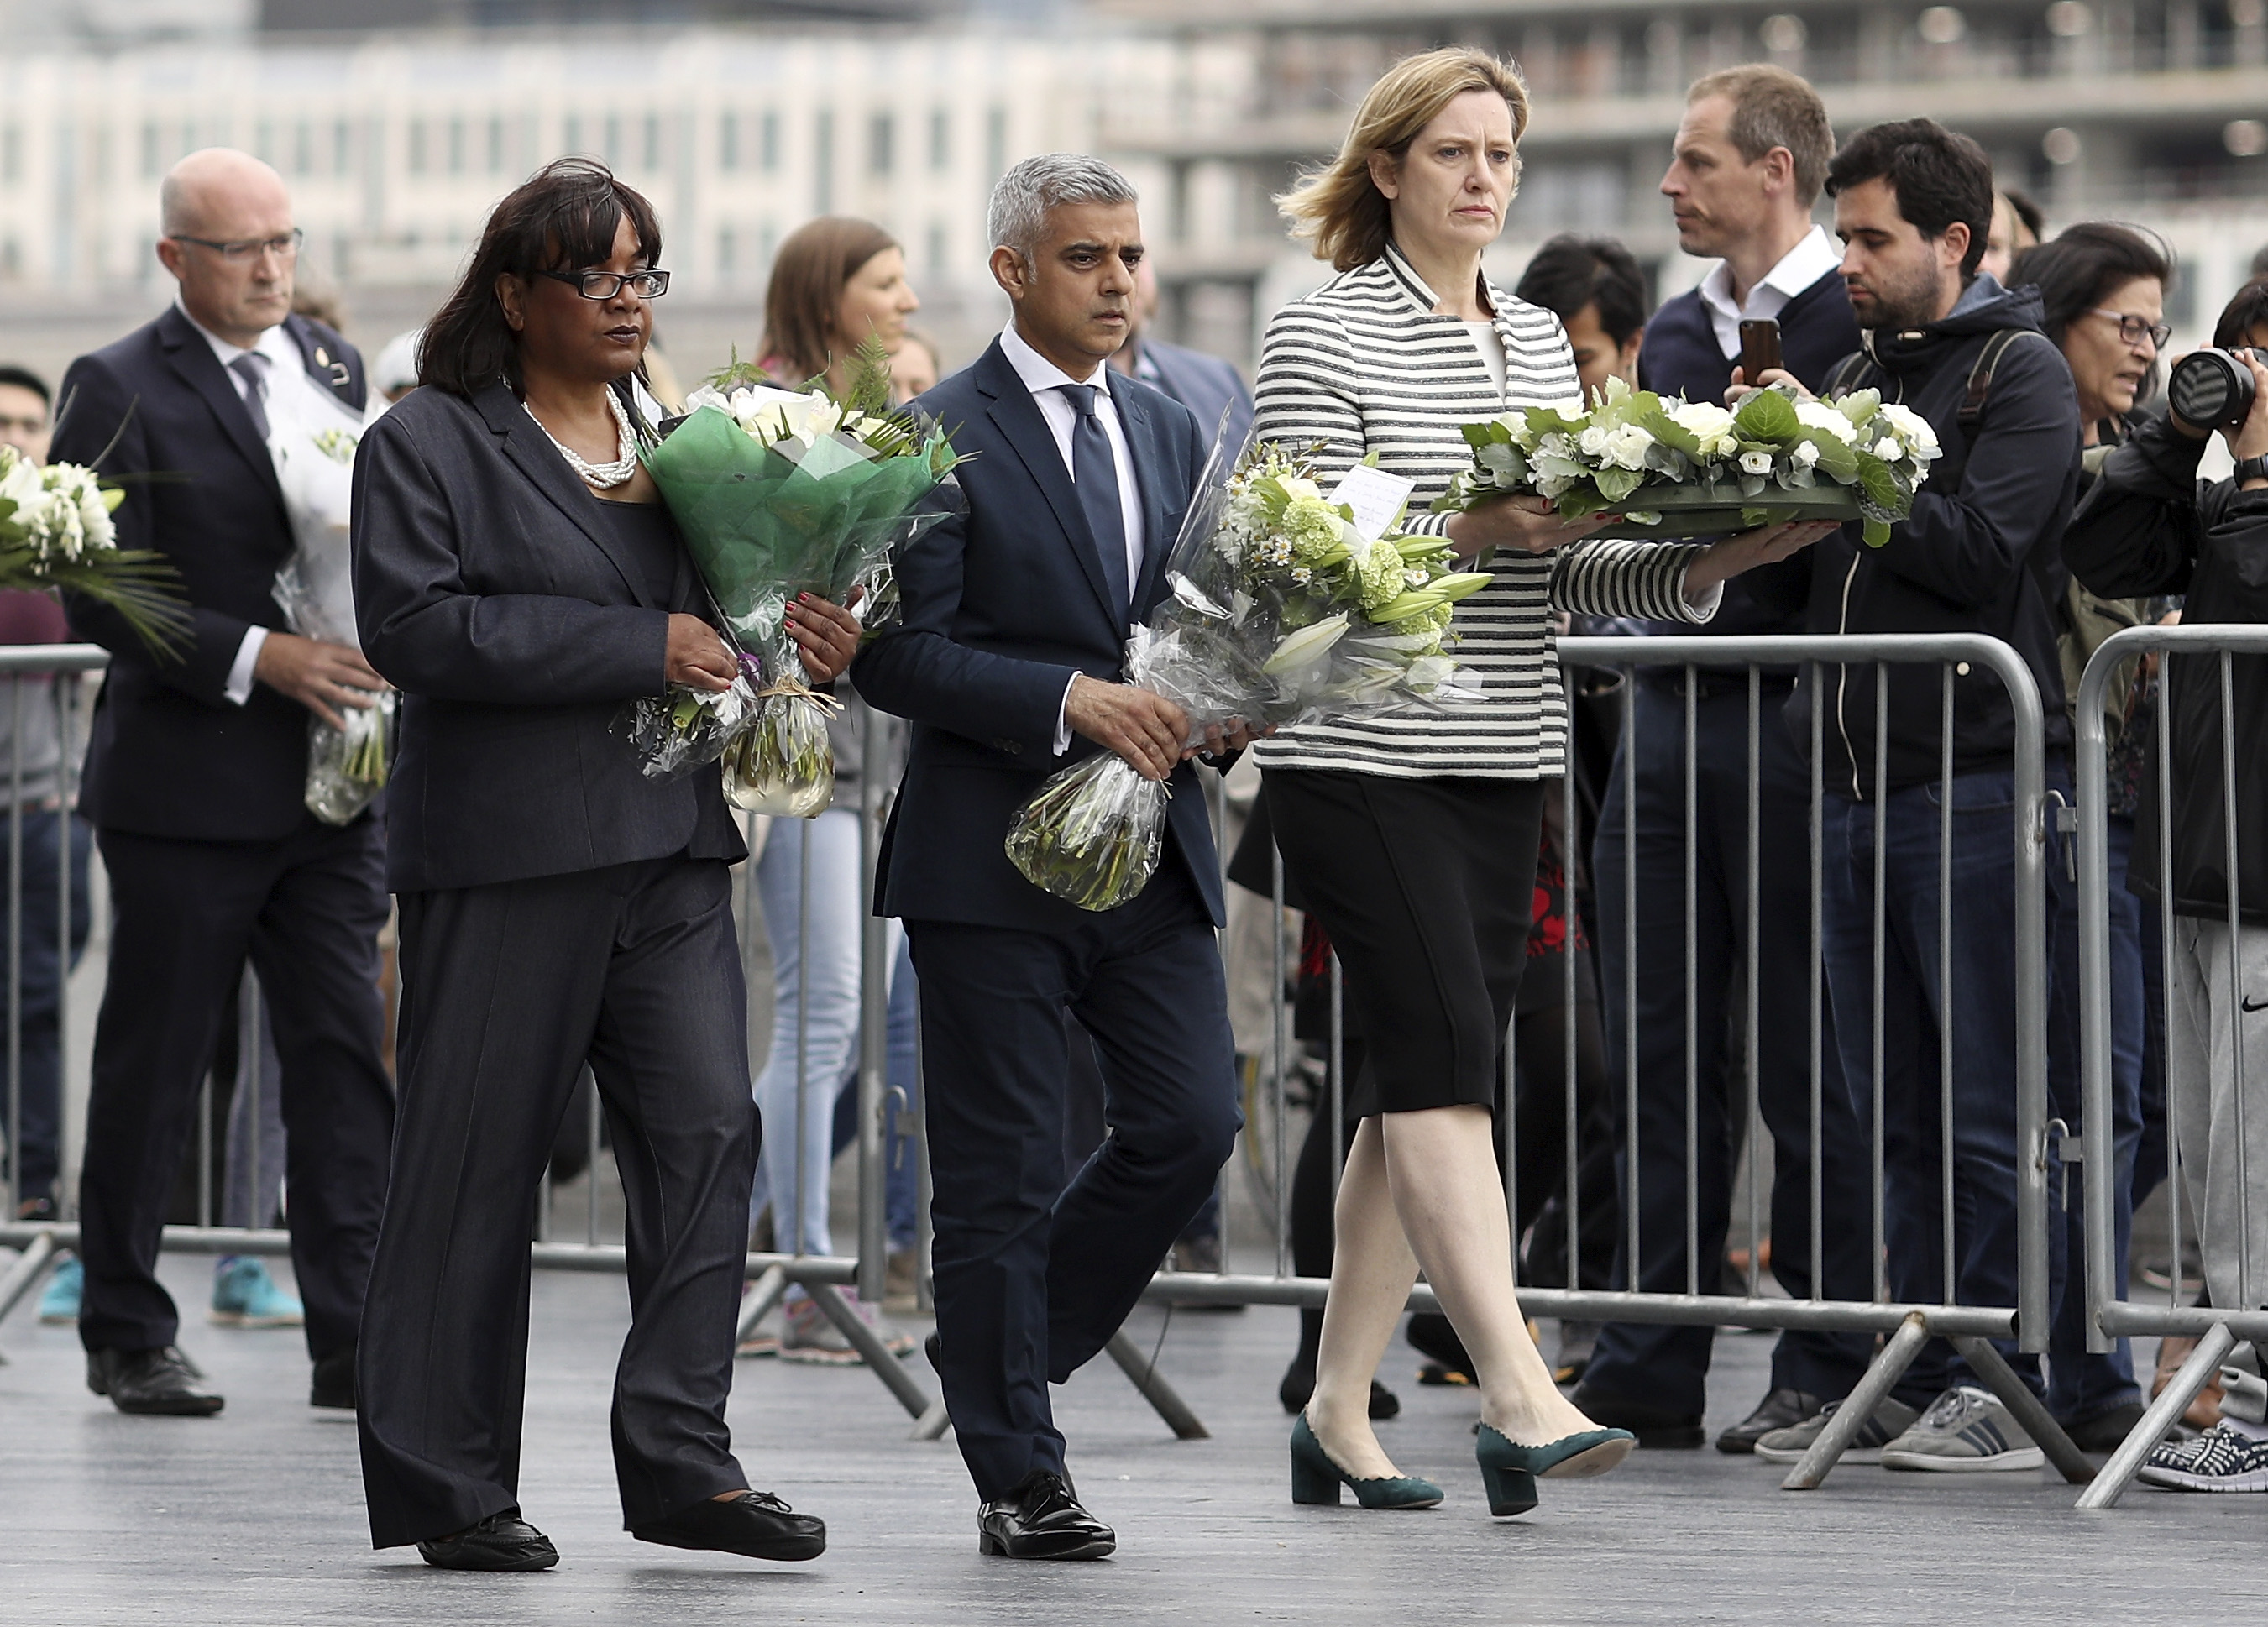 (L-R) Shadow Home Secretary Diane Abbott, Mayor of London Sadiq Khan and Home Secretary Amber Rudd take part in a vigil for the victims of the London Bridge terror attacks, in Potters Fields Park on June 5, 2017 in London, England. Seven people were killed and at least 48 injured in terror attacks on London Bridge and Borough Market on June 3rd. Three attackers were shot dead by armed police.